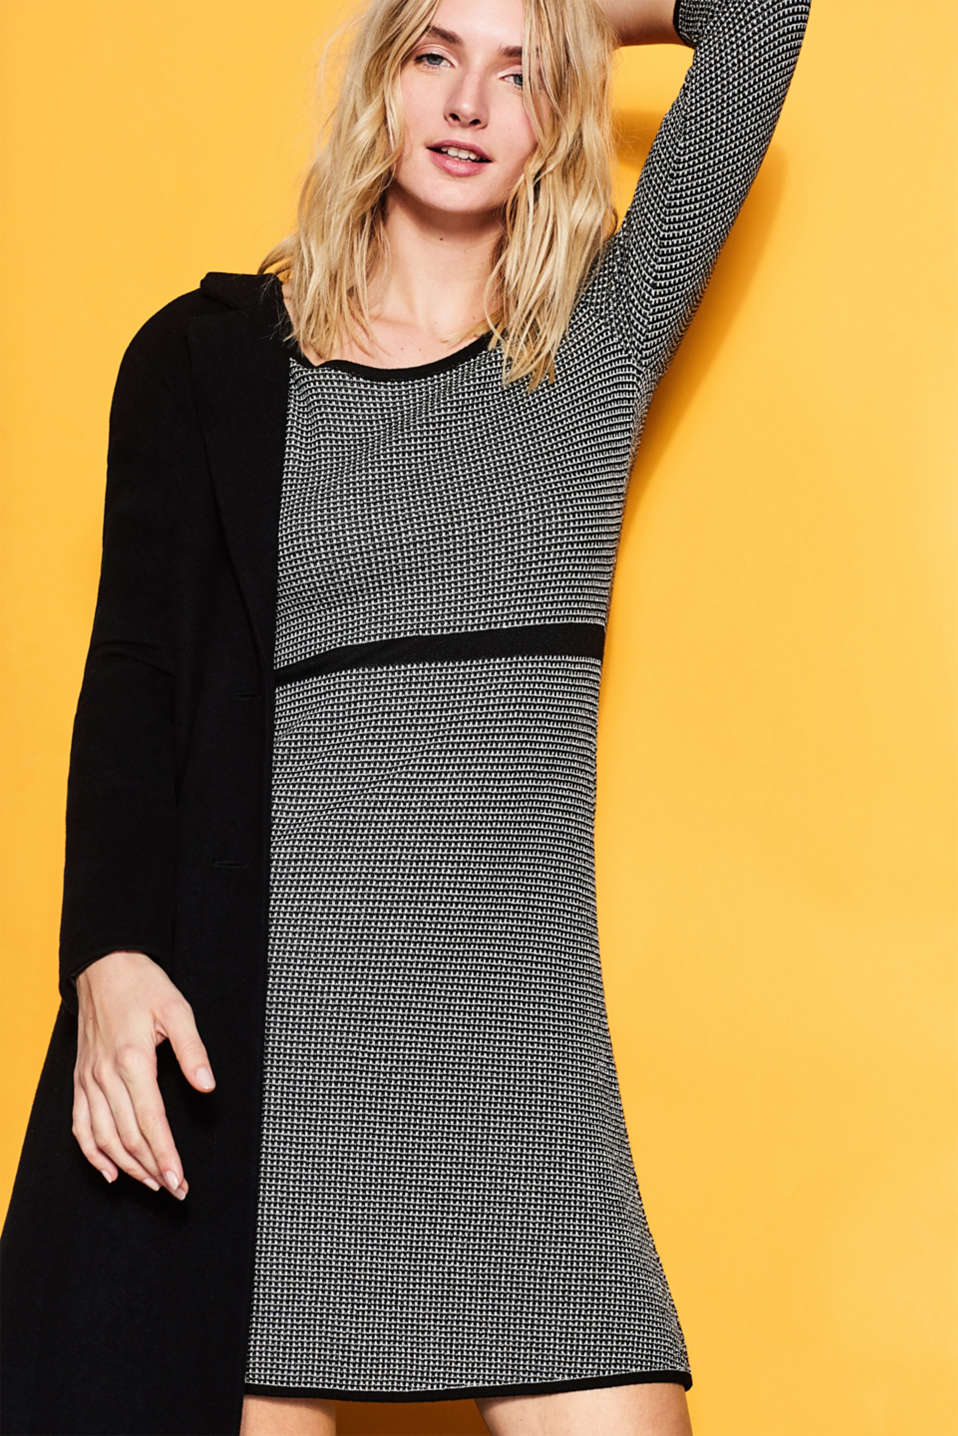 Knit dress with a textured pattern